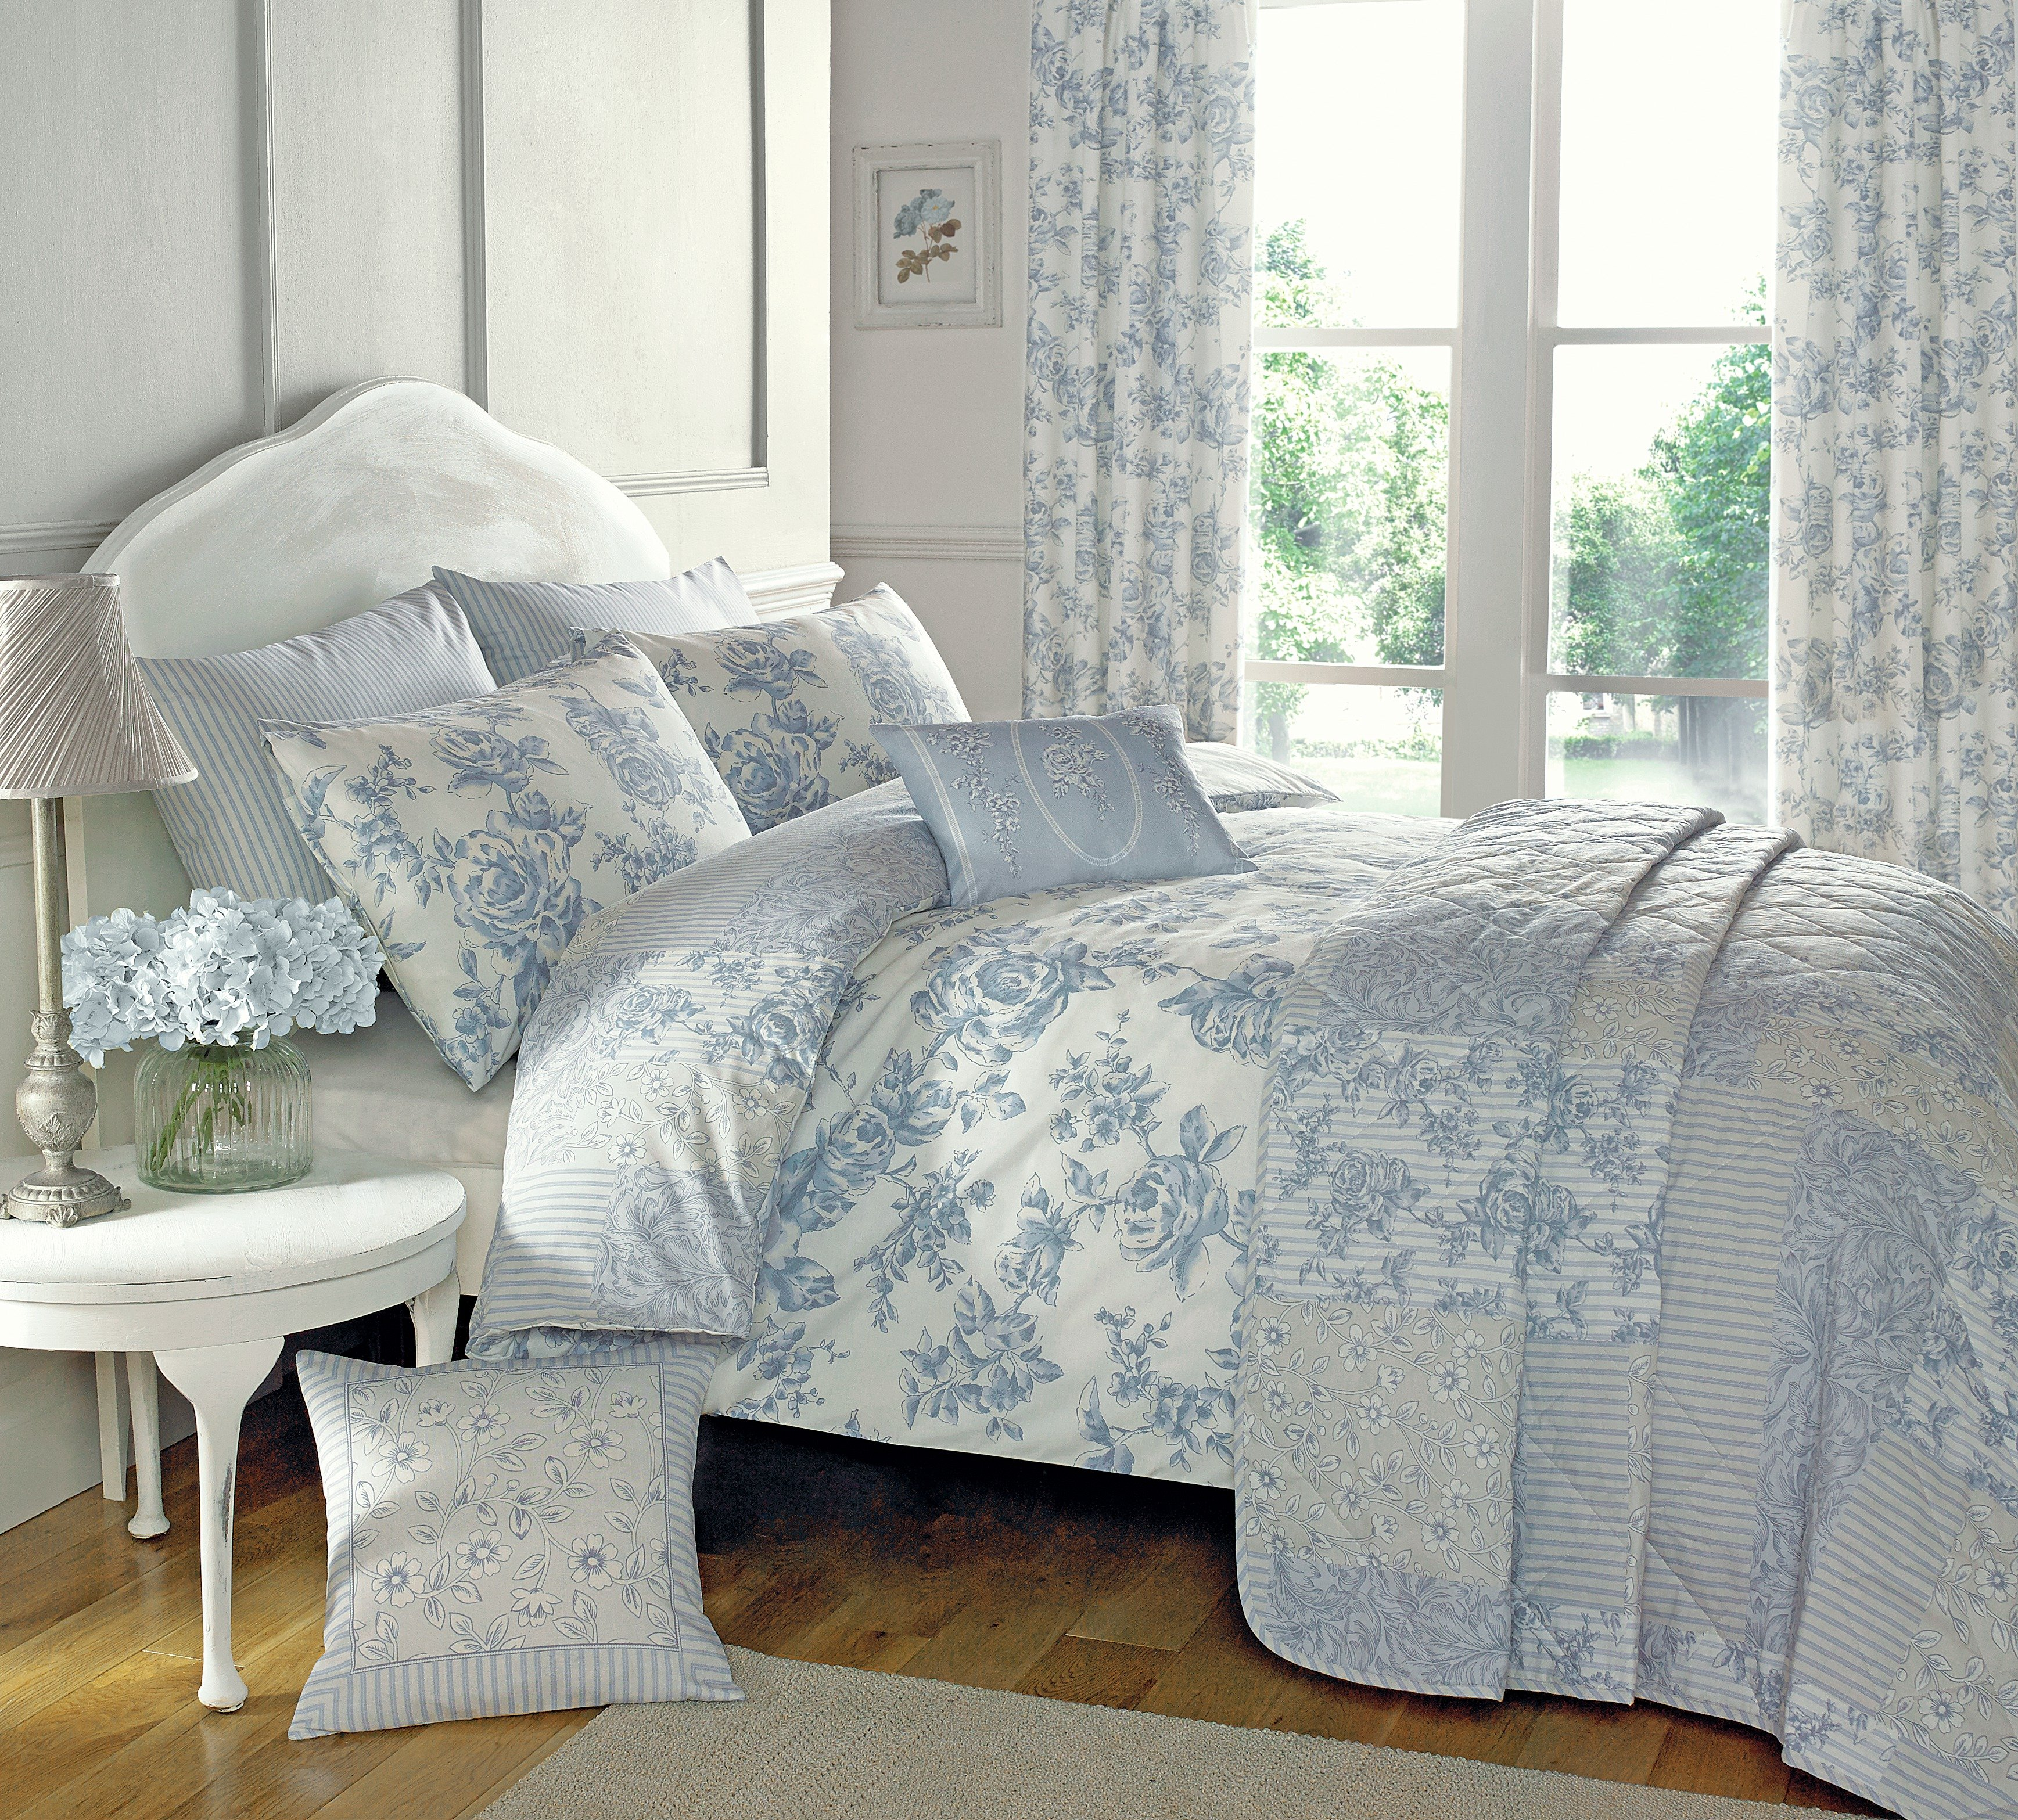 buy catherine lansfield duvet cover sets at. Black Bedroom Furniture Sets. Home Design Ideas